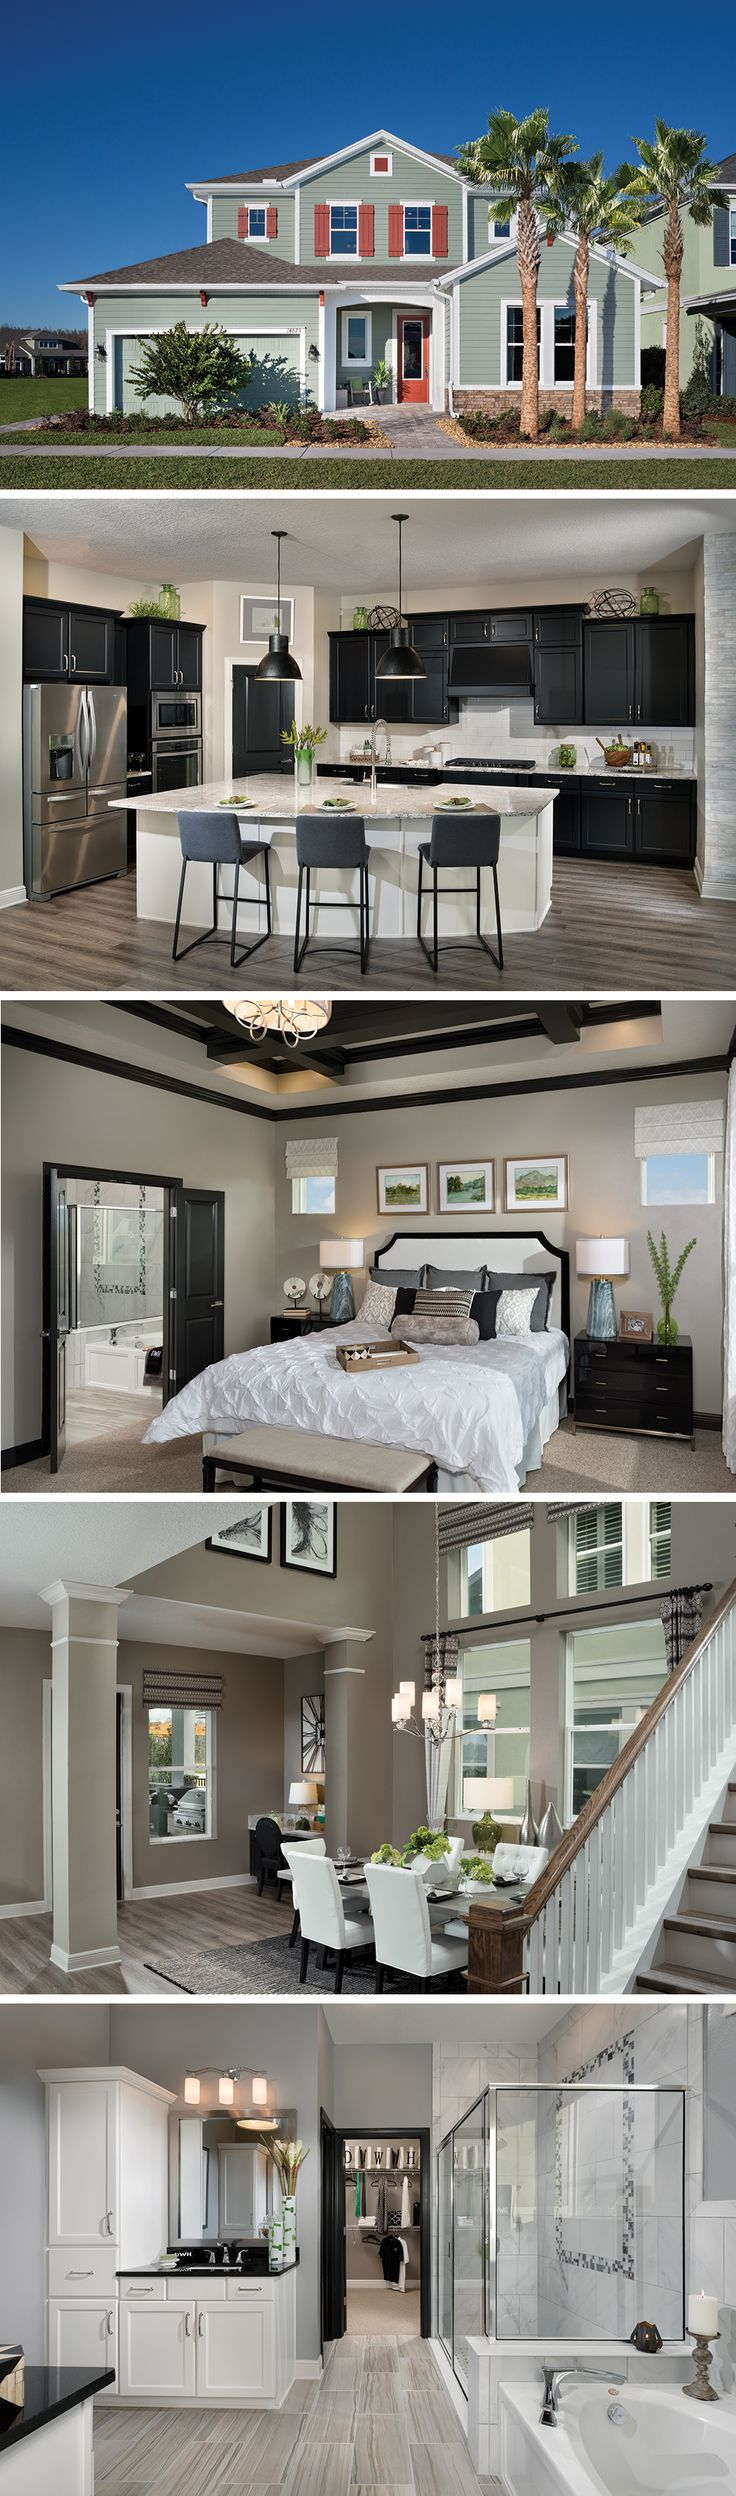 The Mendocino by David Weekley Homes in Asturia is a 4 bedroom floorplan that features a lanai, an open kitchen and family room layout and a tray ceiling in the owners retreat. Custom home upgrades include an extended lanai, beams in the owners retreat and a super shower in the owners bathroom.